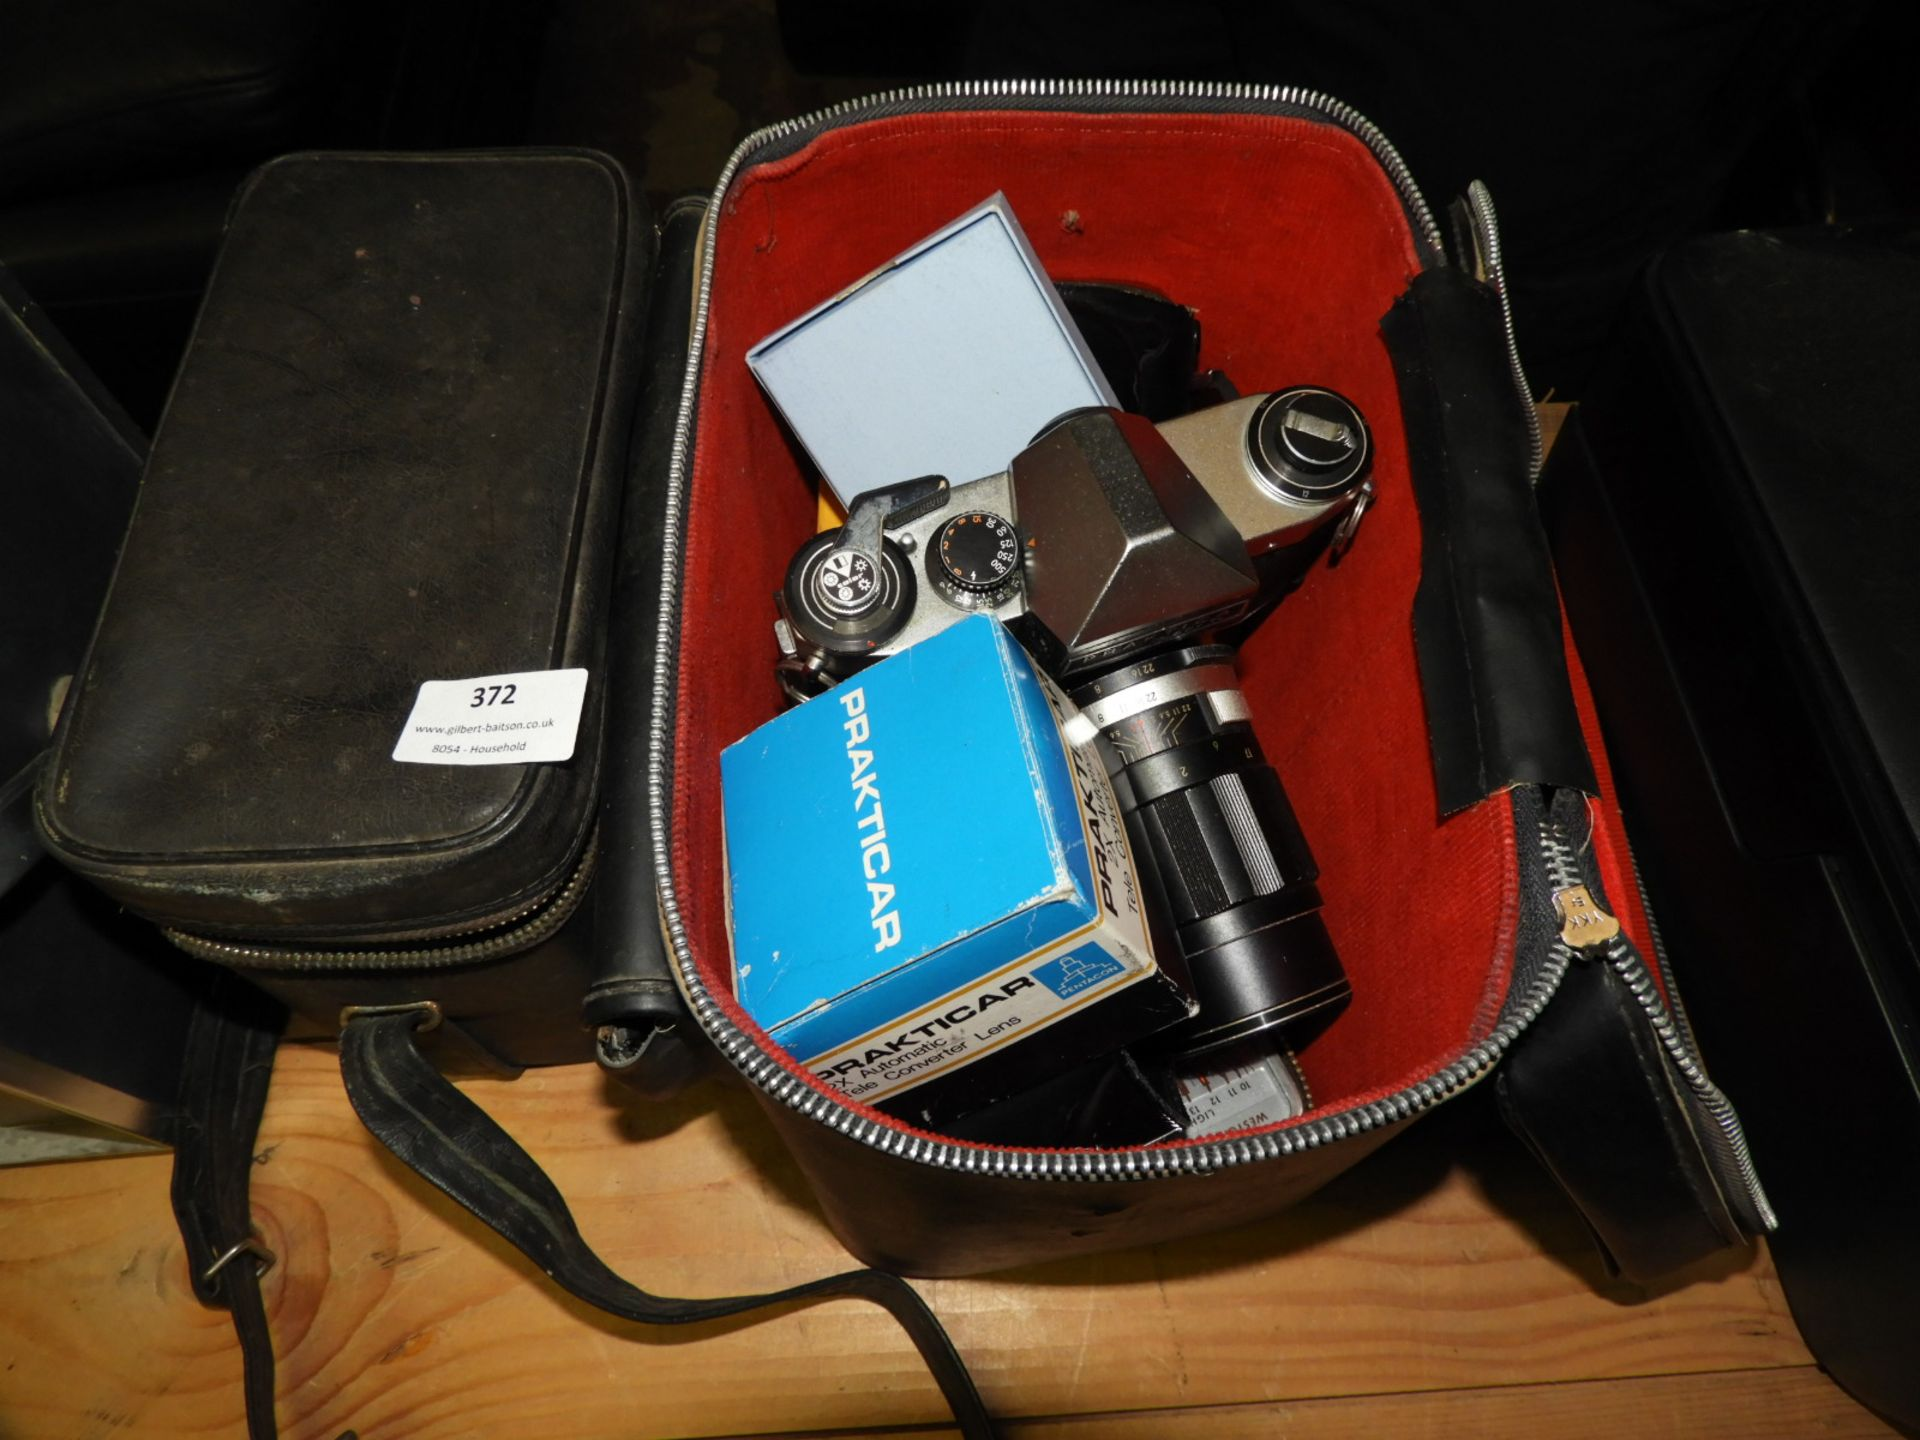 Lot 372 - Praktica Camera with Lens, Two Camera Bags and Acc